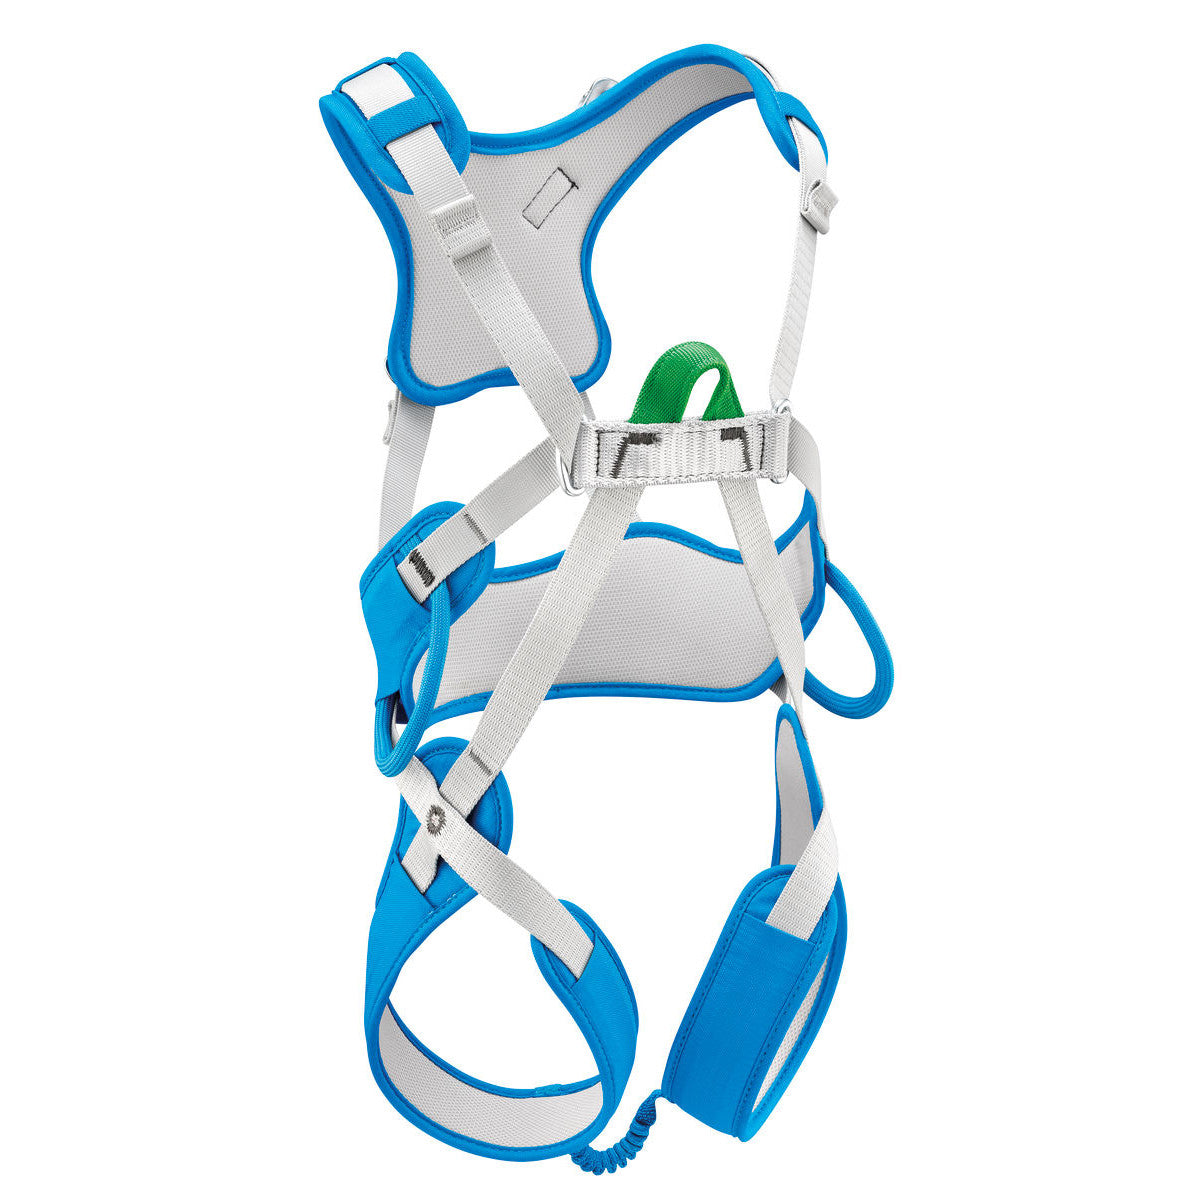 Petzl Ouistiti Kids climbing Harness, front/side view, in Blue and Grey colours